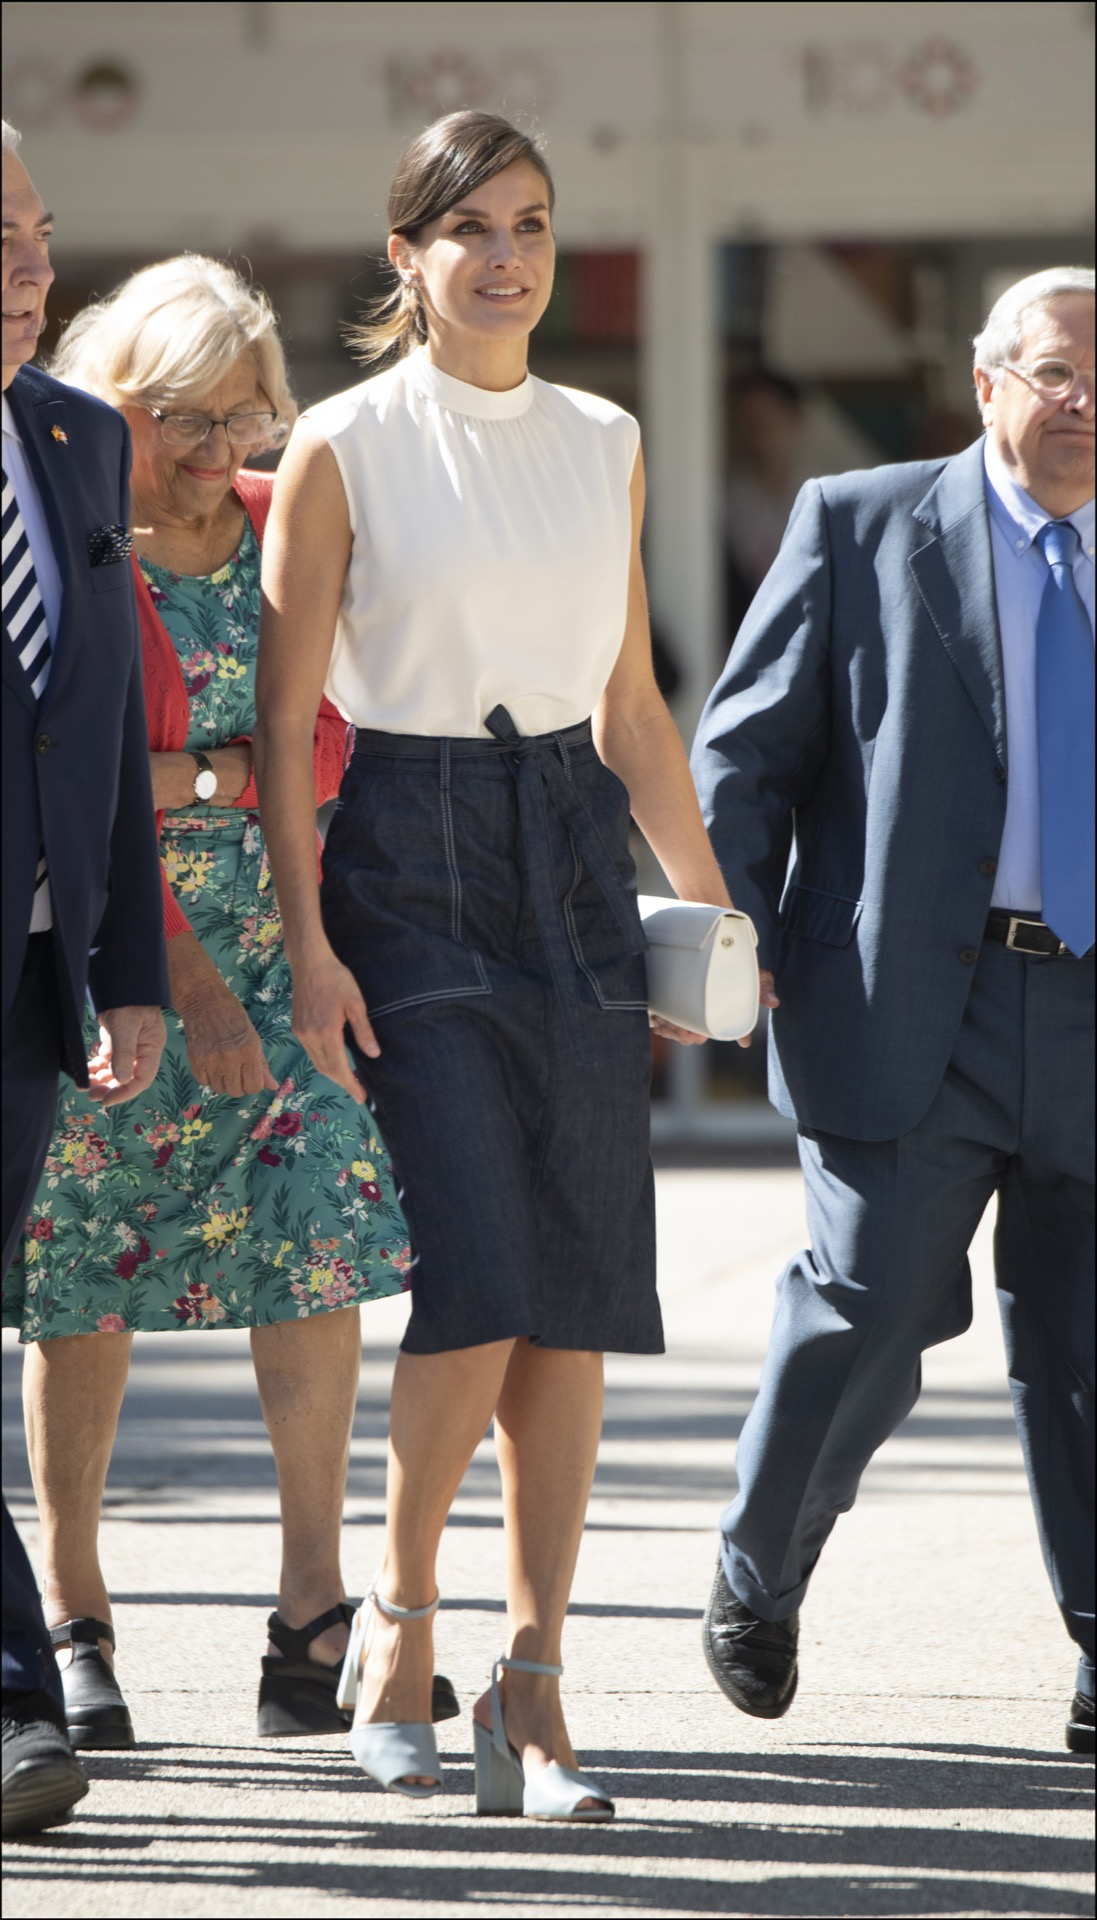 Muy canchero el look working day de Letizia.